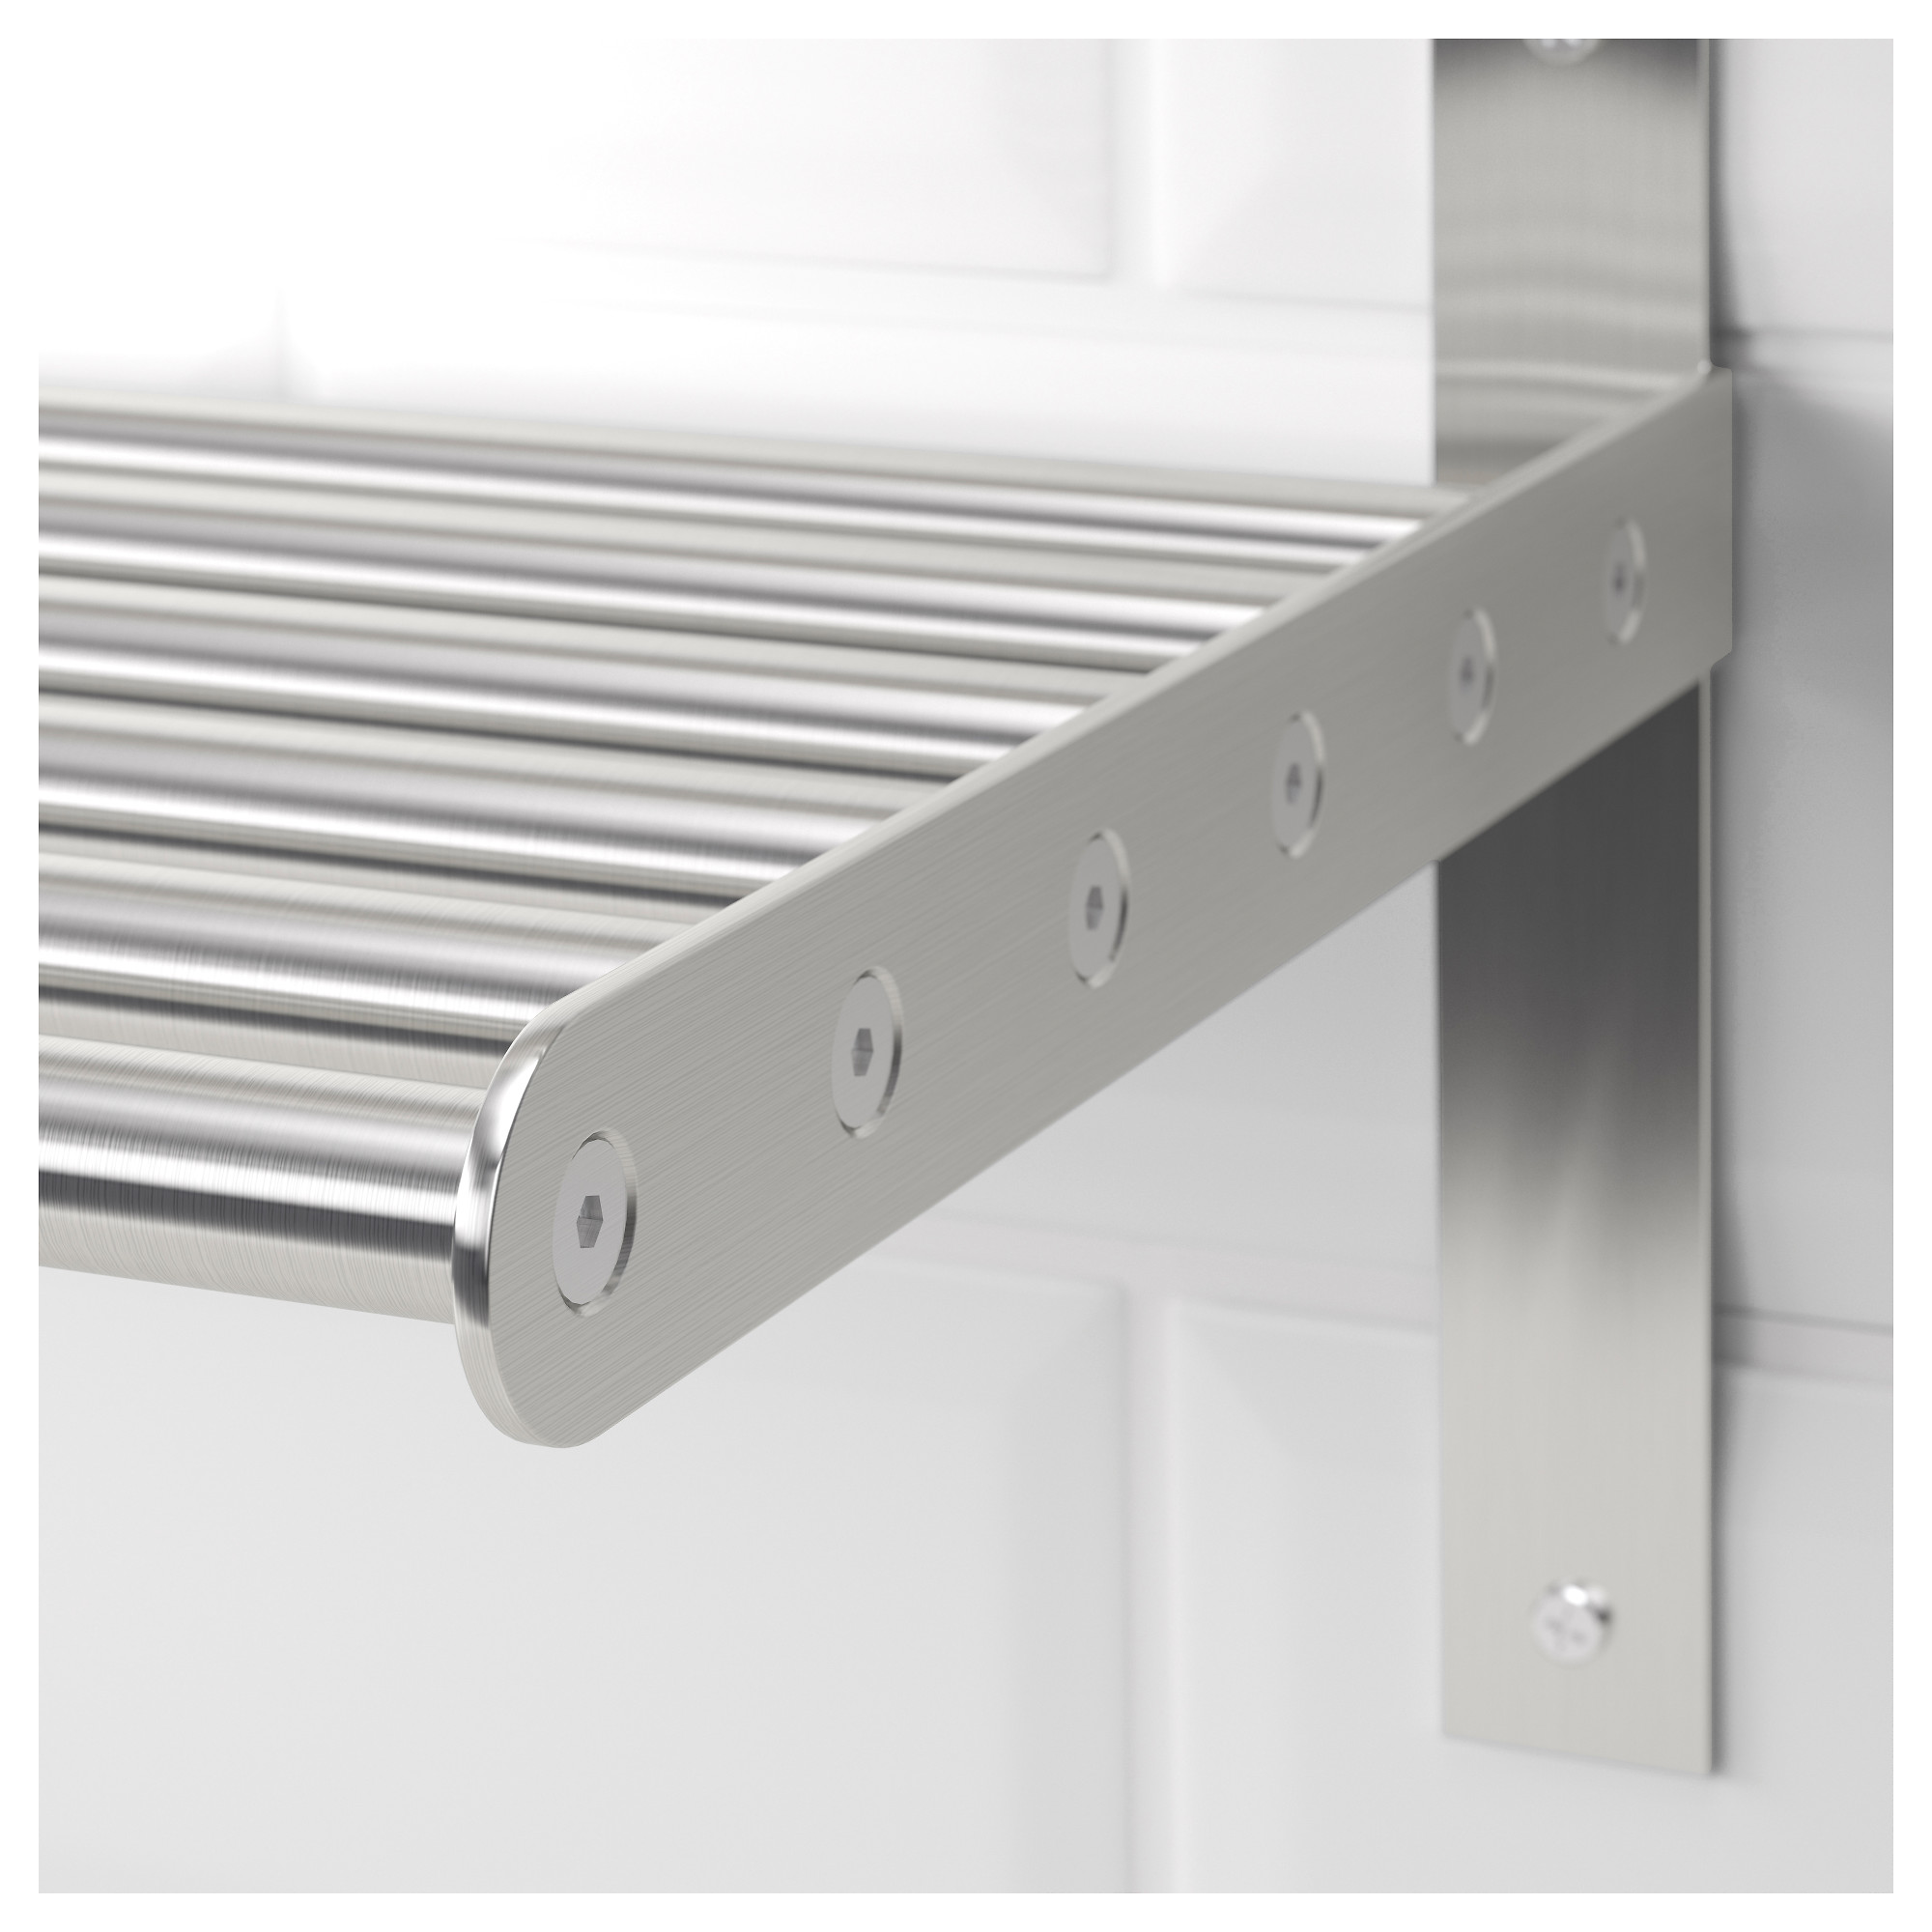 Ikea Grundtal Wall Shelf Stainless Steel